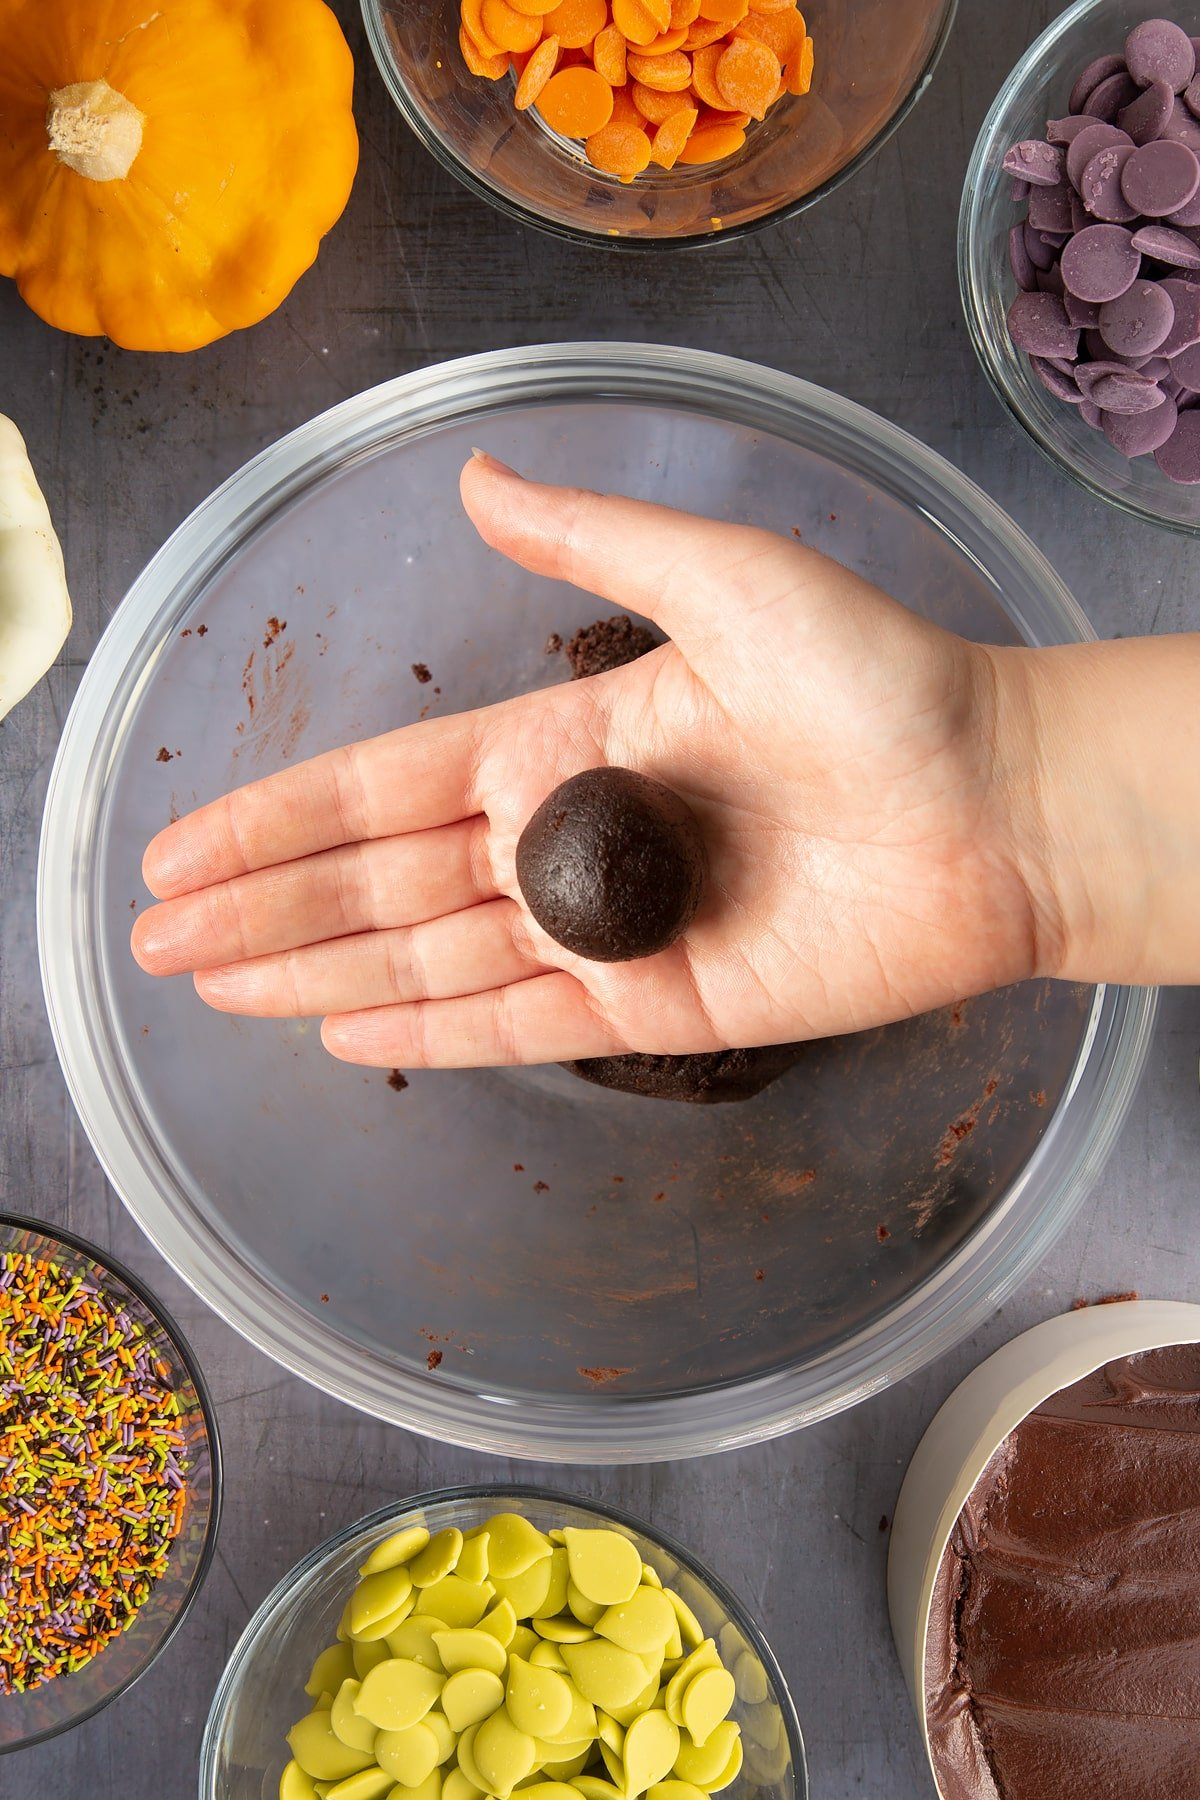 A hand holding a ball of chocolate cake. Ingredients to make Halloween cake pops surround the bowl beneath.